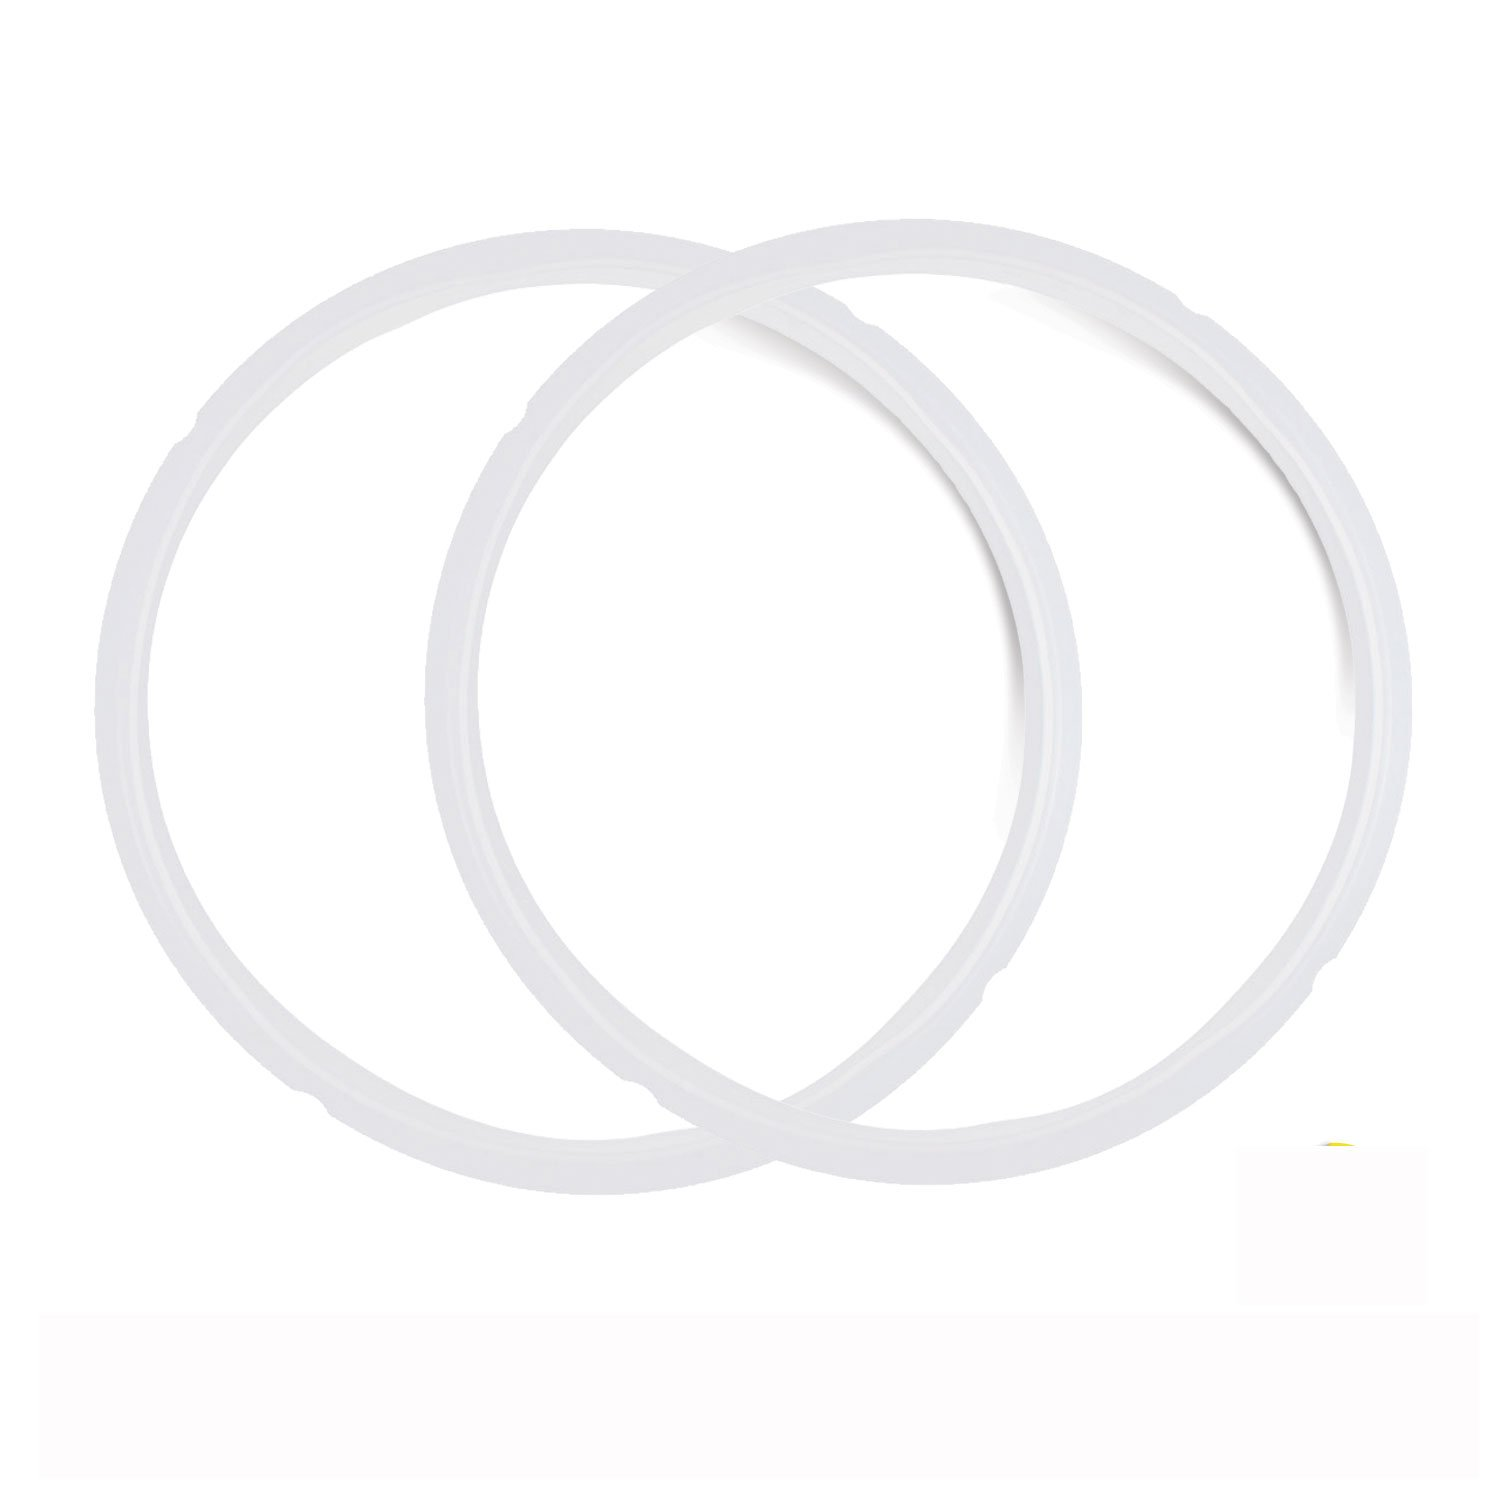 Pack of 2 Silicone Sealing Rings for Instant Pot 5 & 6 Quart - Fits IP-DUO60, IP-LUX60, IP-DUO50, IP-LUX50, Smart-60, IP-CSG60 and IP-CSG50